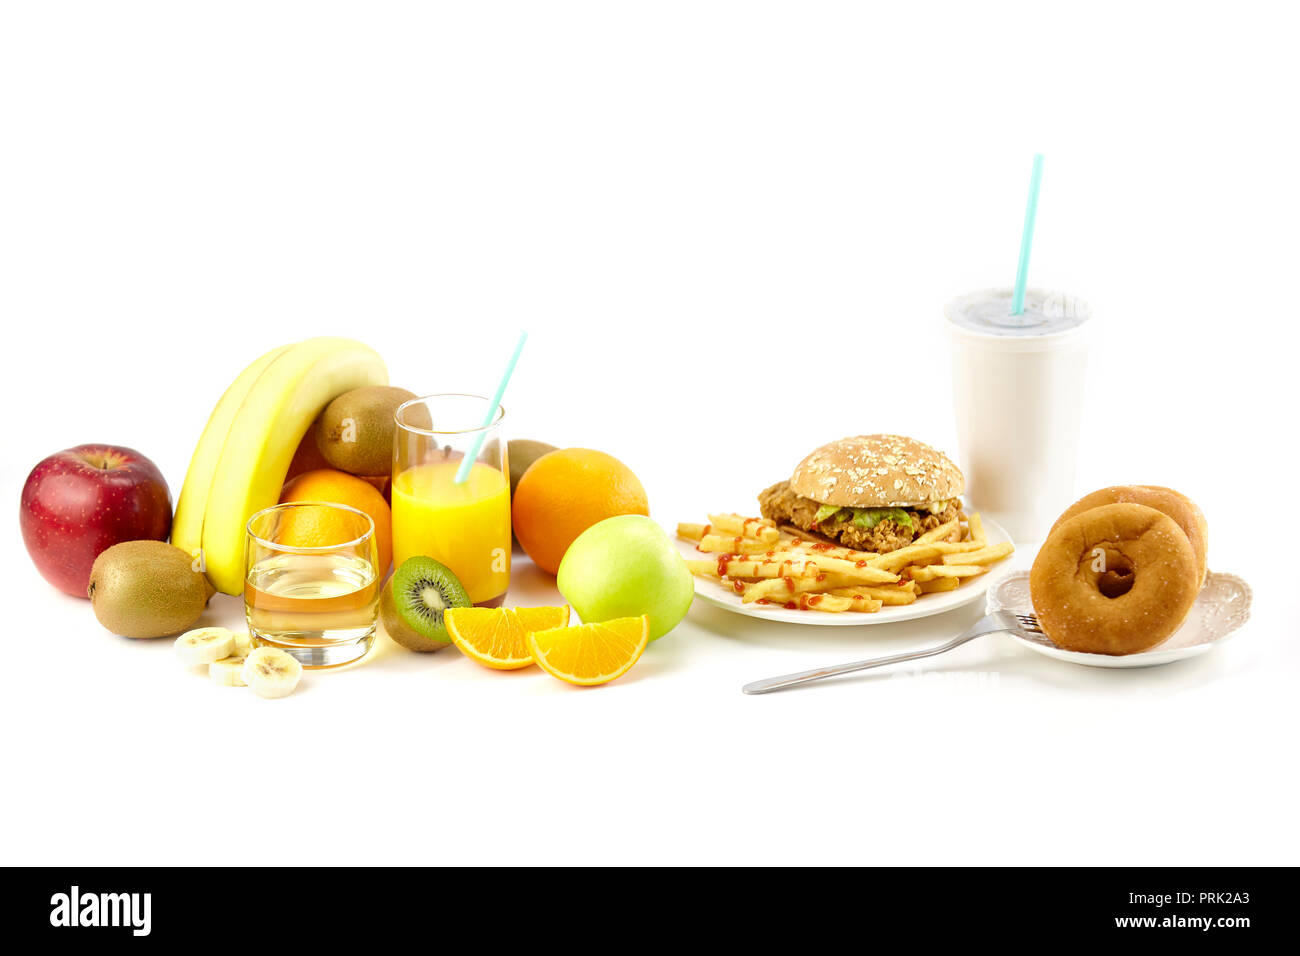 assorted fresh fruits, juice, hamberger, french fries, doughnuts and soft drink isolated on white background. Stock Photo